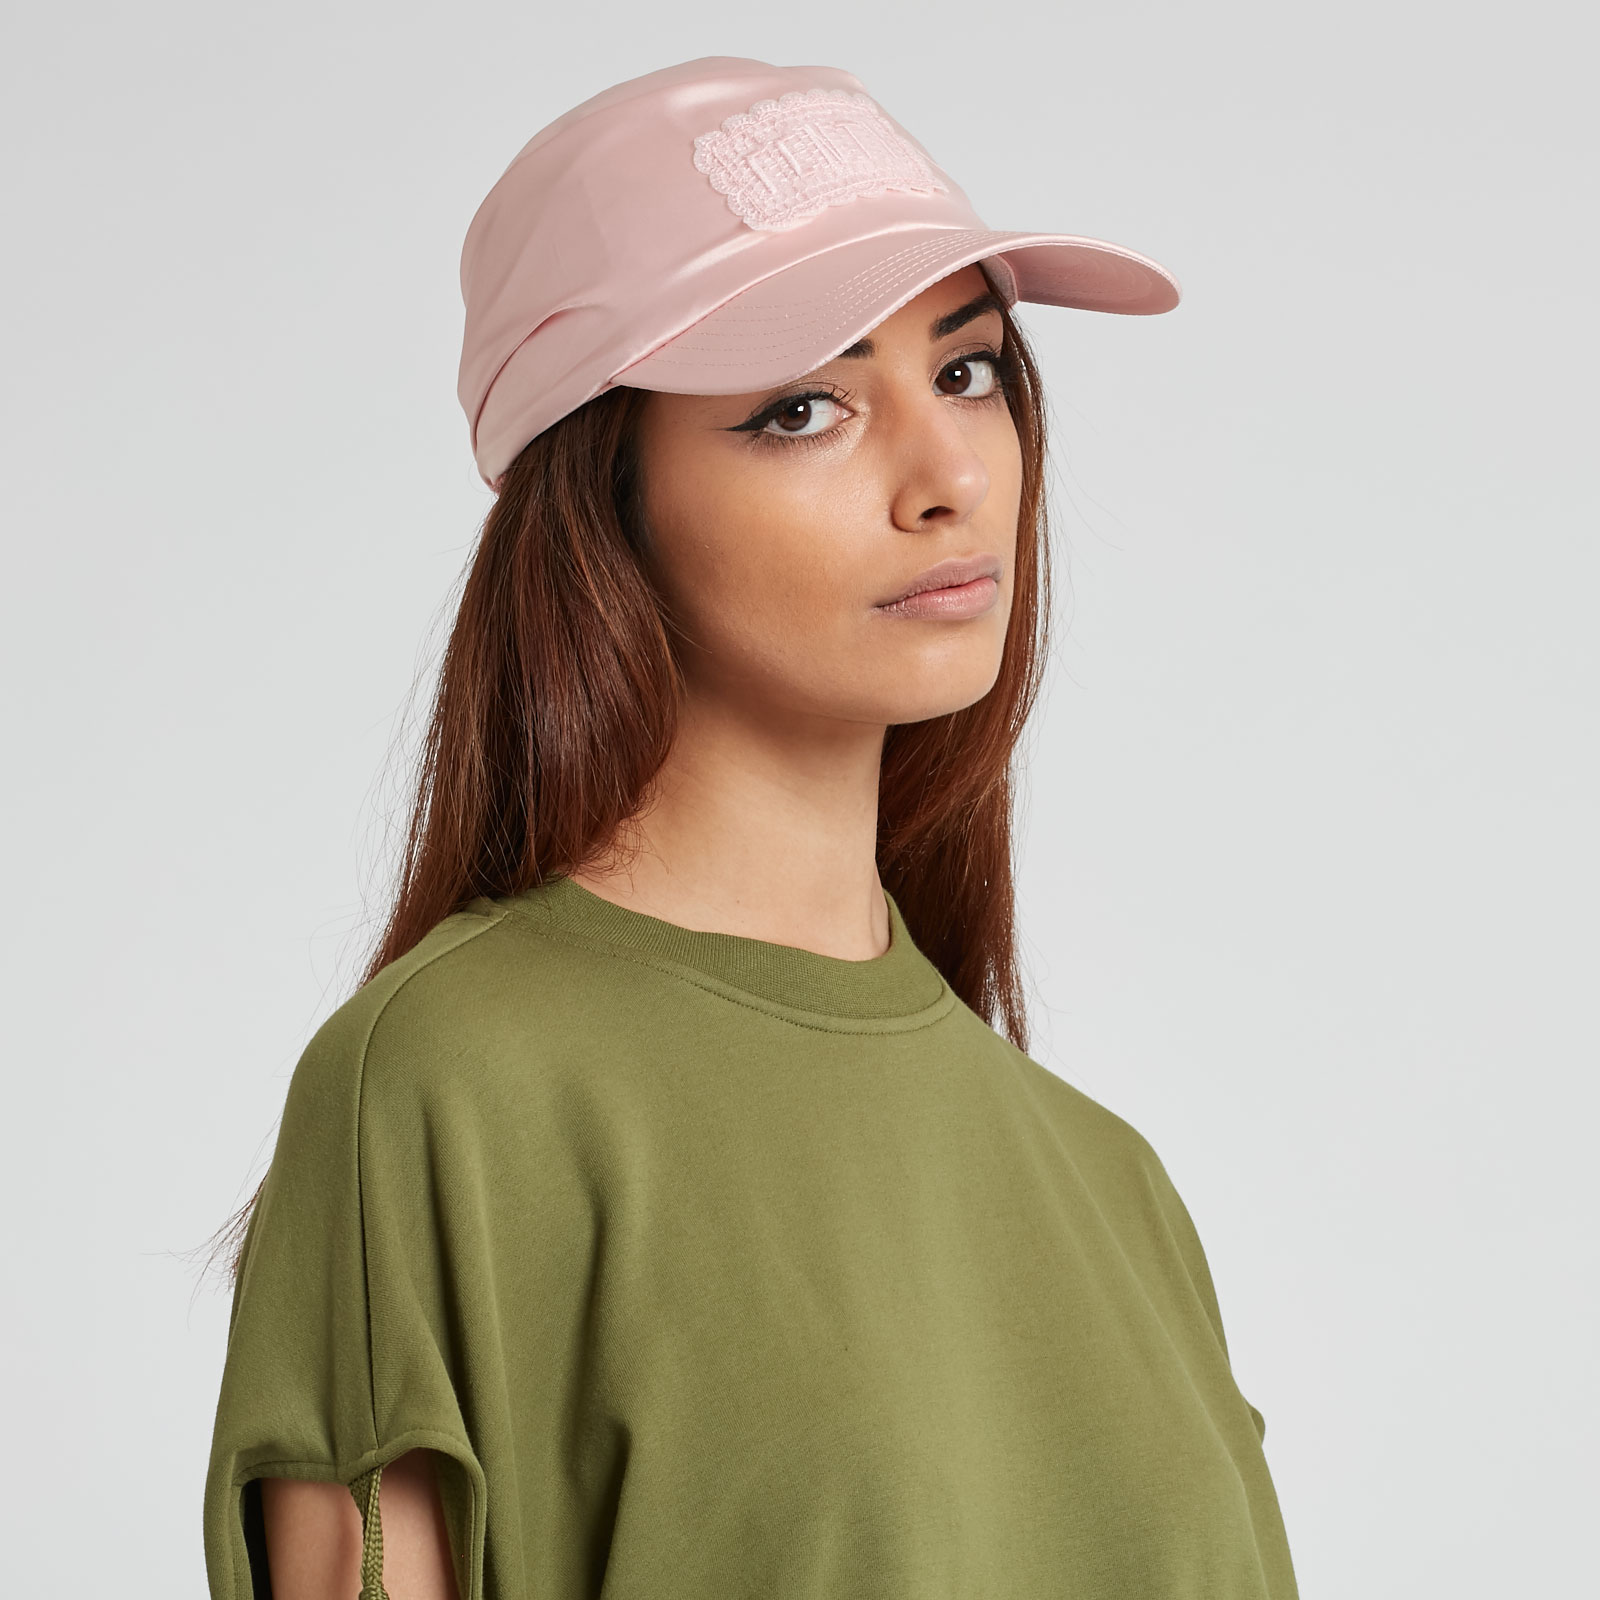 low priced 992b5 7cff7 ... sale fenty puma by rihanna bandana cap 77c77 2ff1a